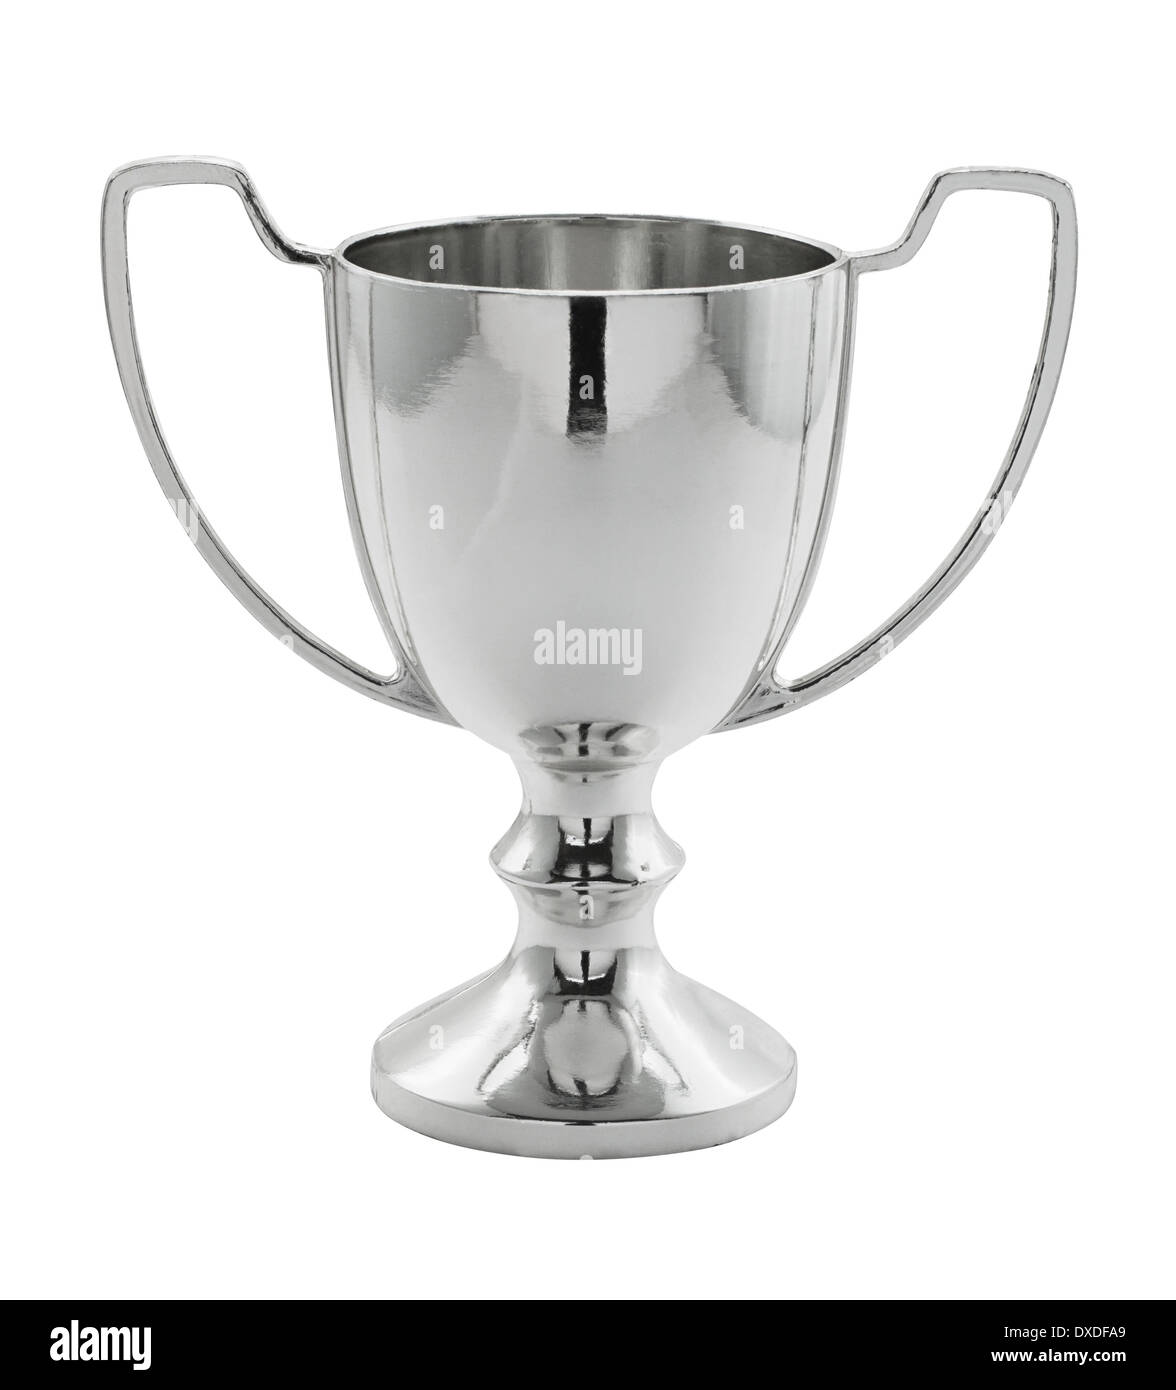 Silver Winning trophy isolated great concept for achievement, success or first place in a competition. - Stock Image